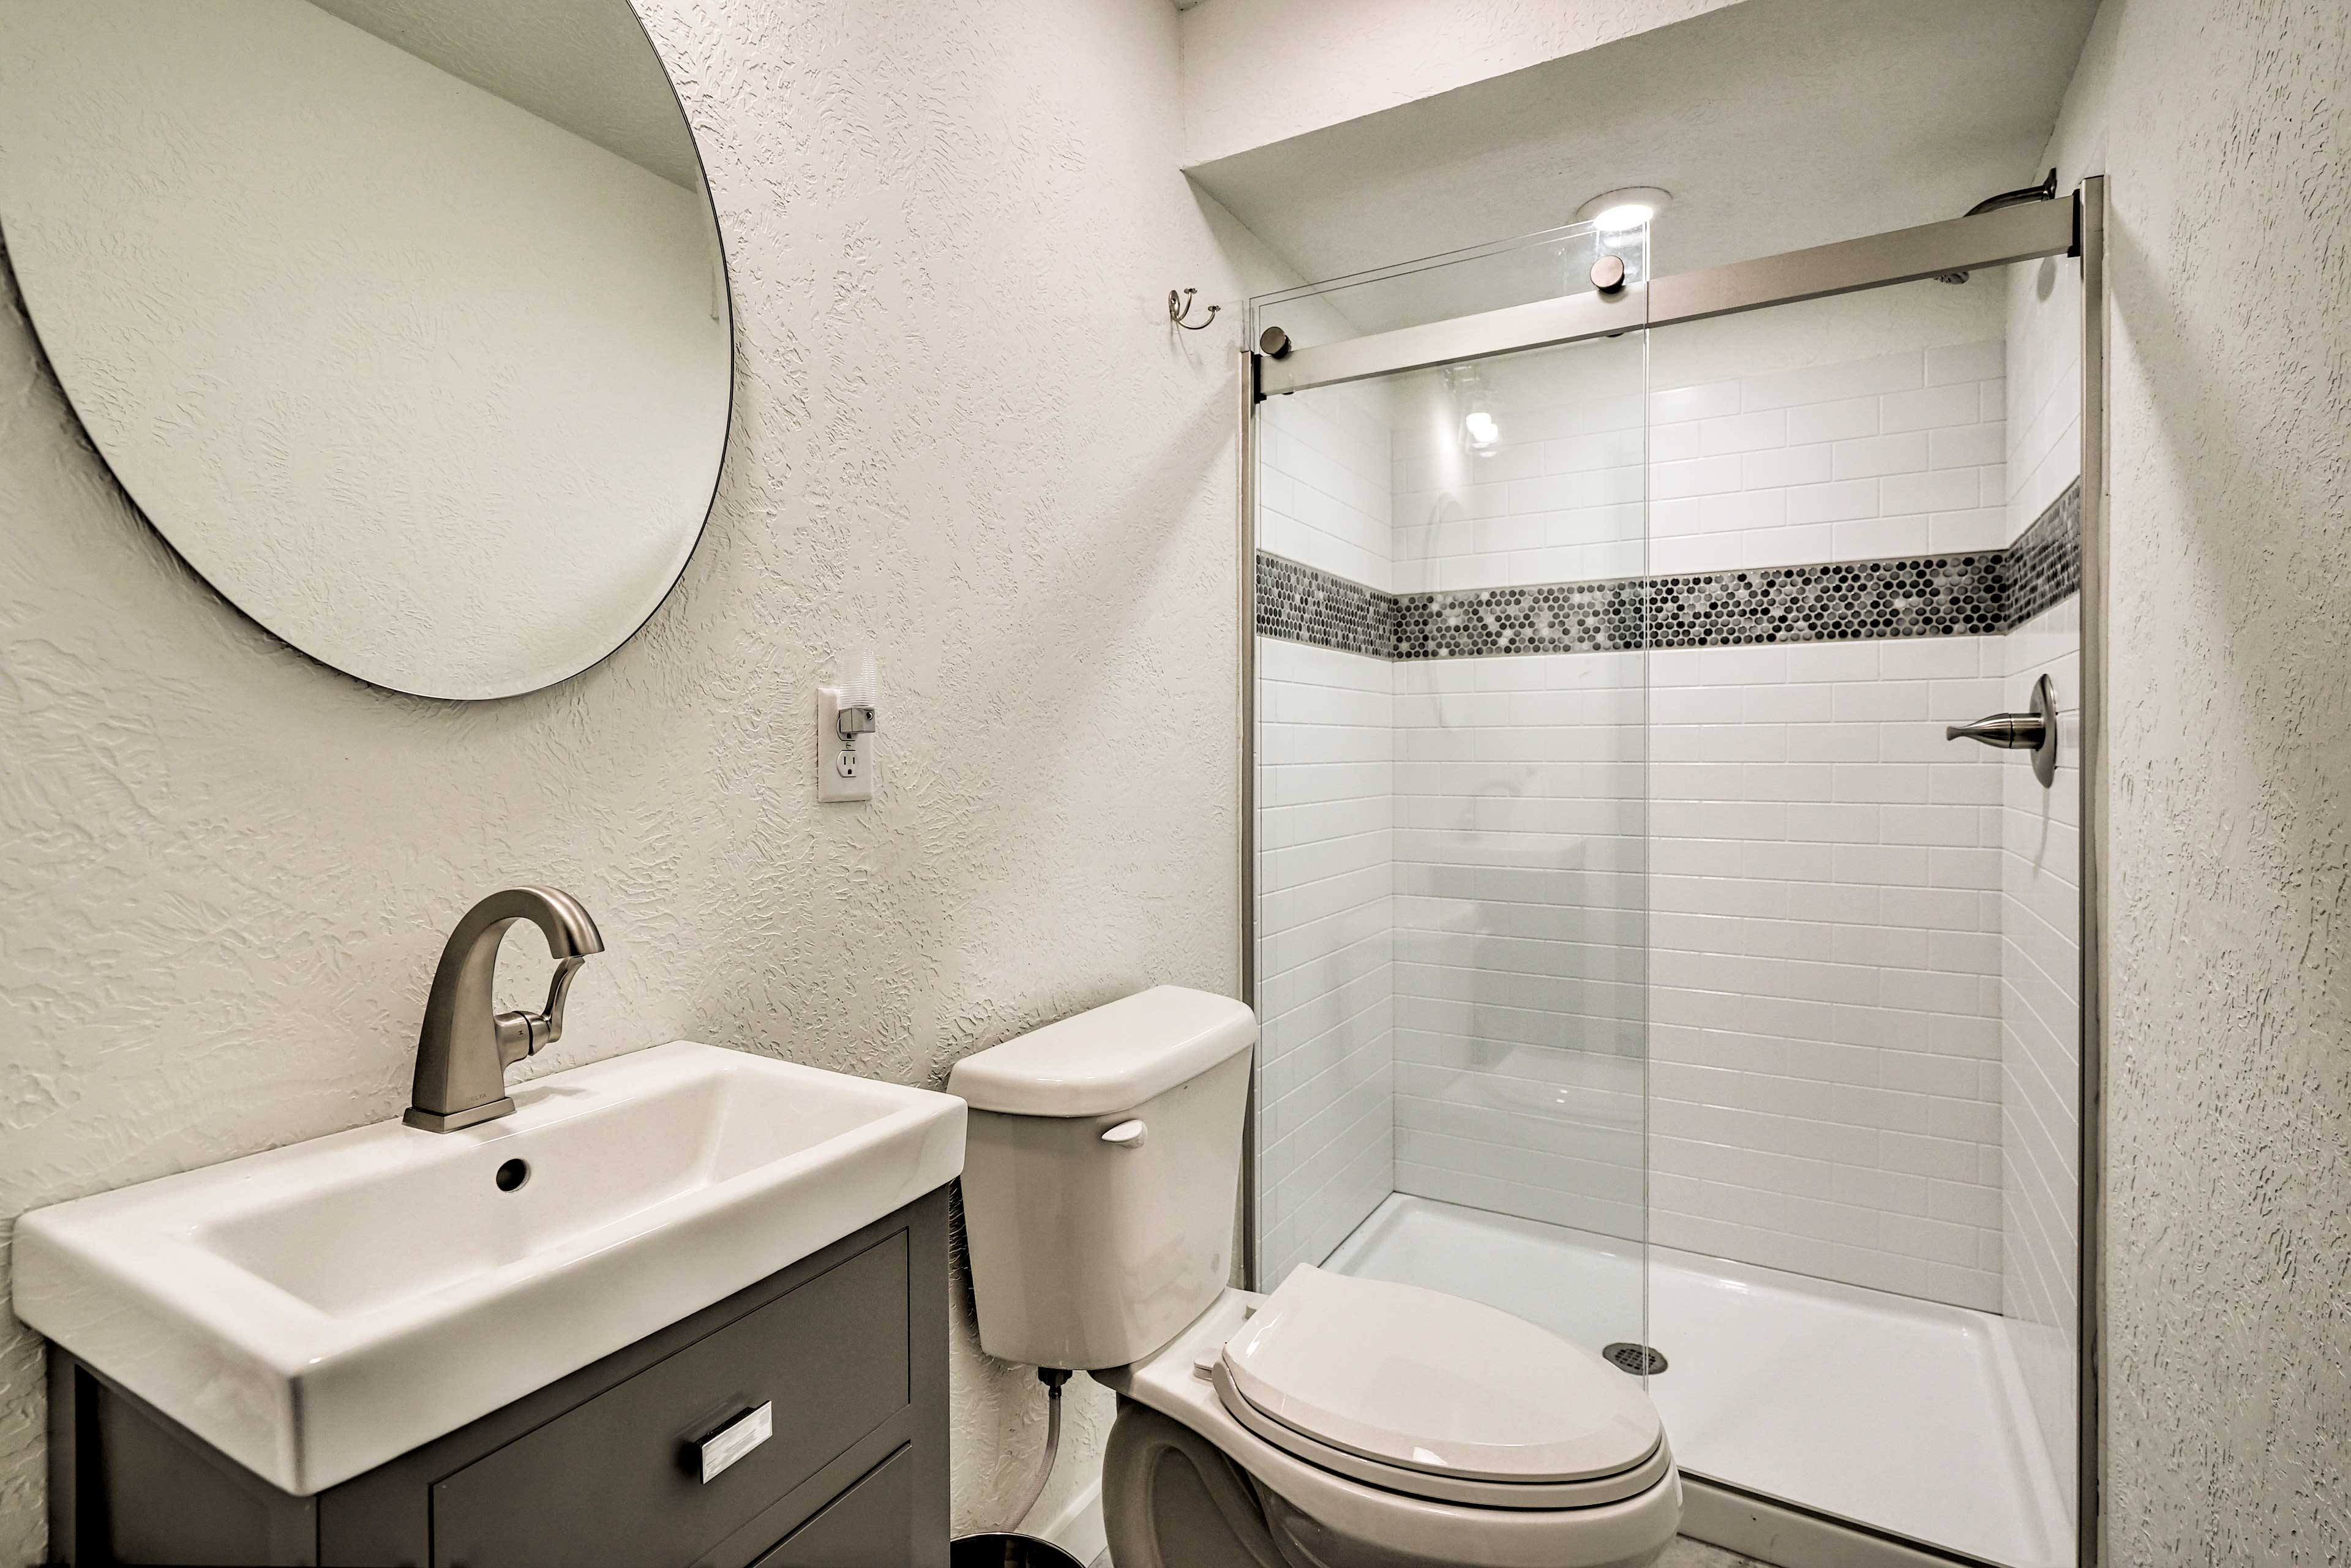 Rinse off in this walk-in shower.